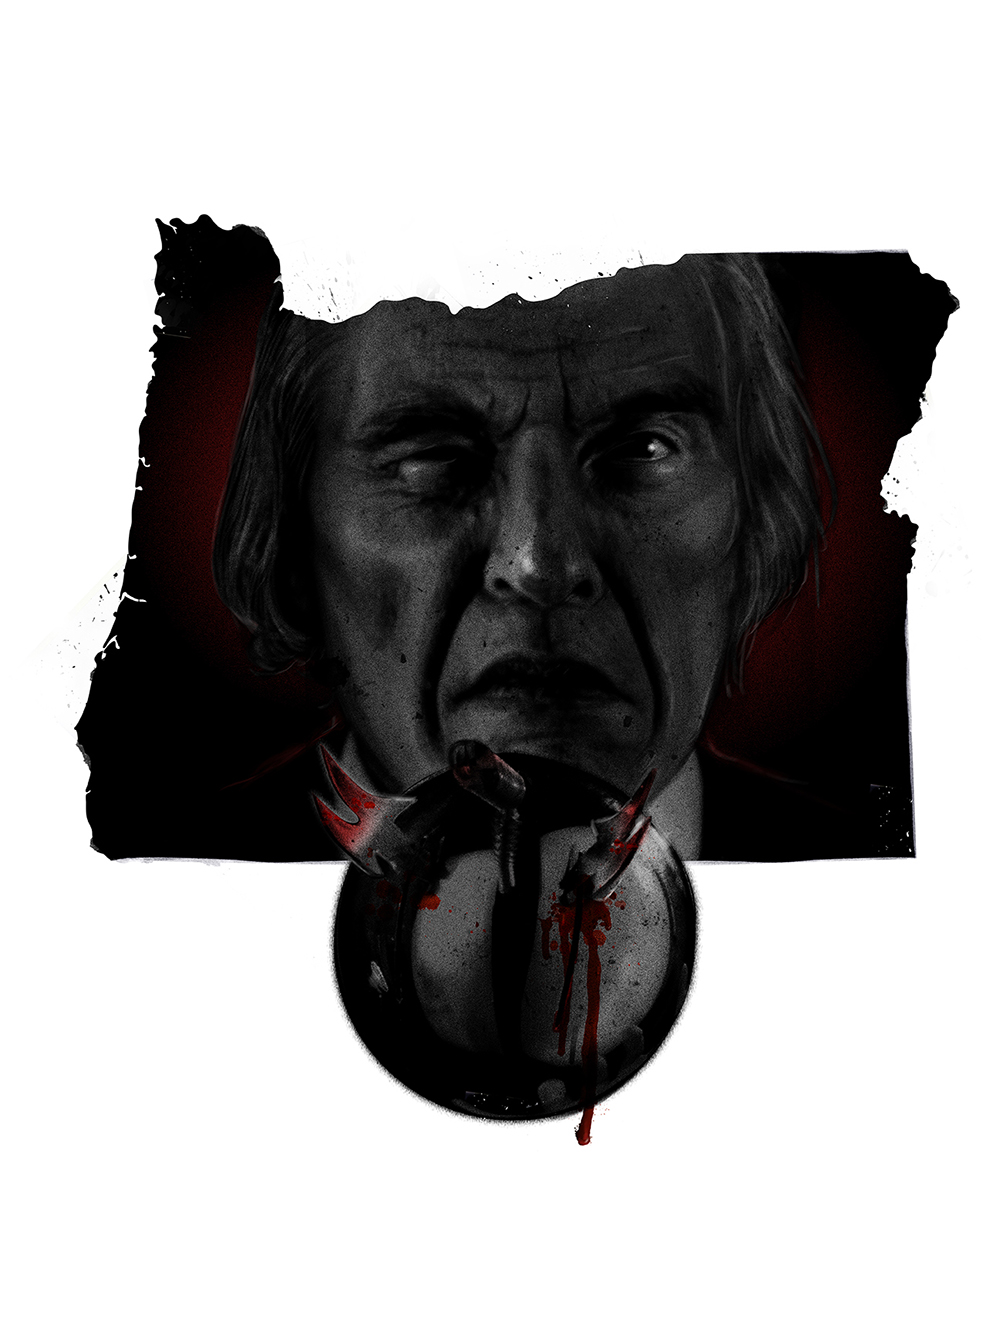 United States of Horror: Oregon